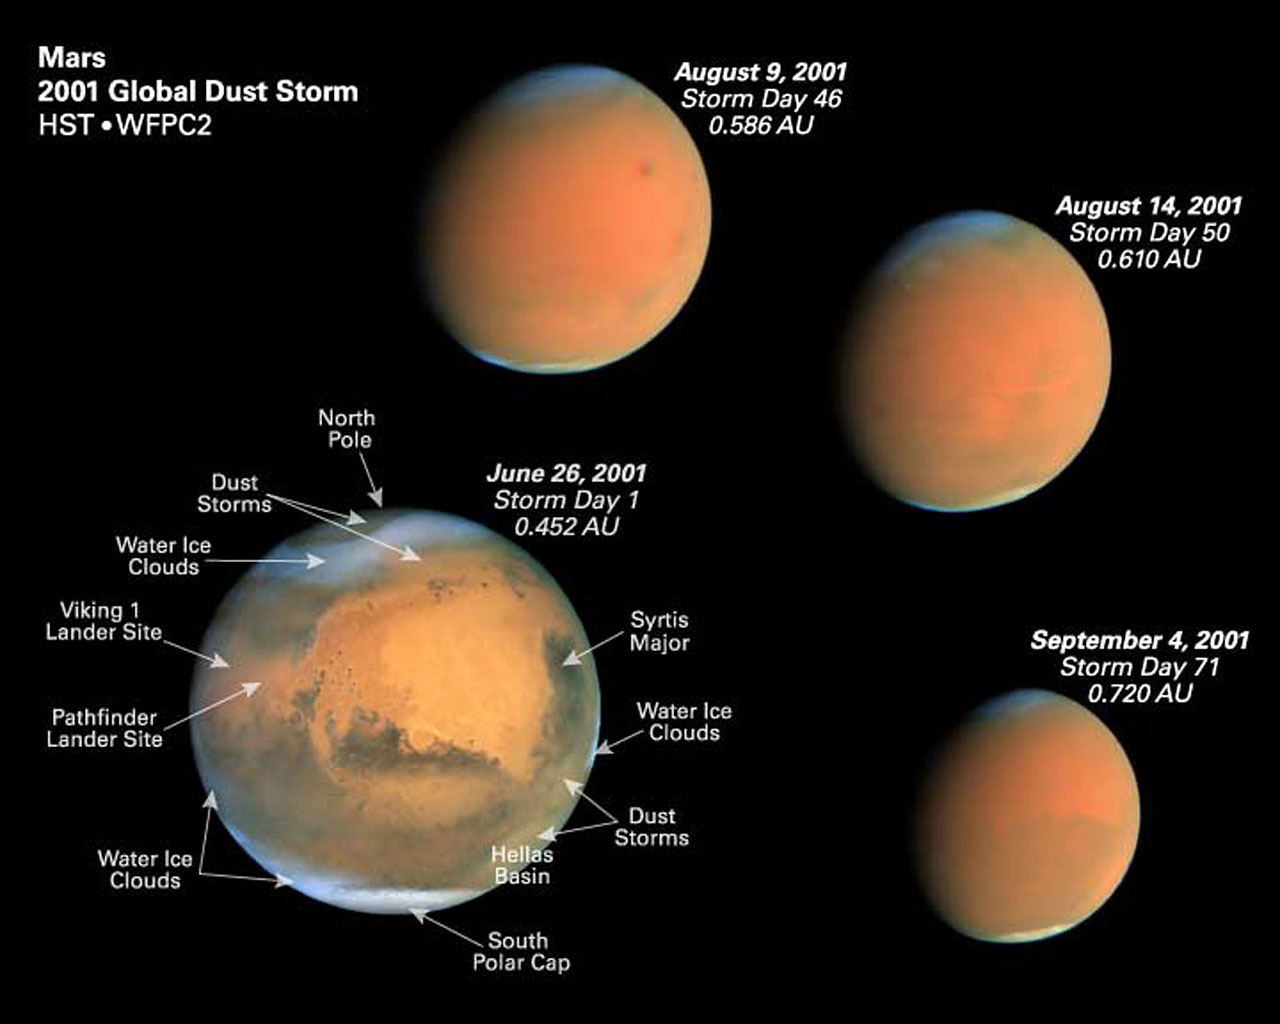 Four epochs of the global dust storm with Martian features ...